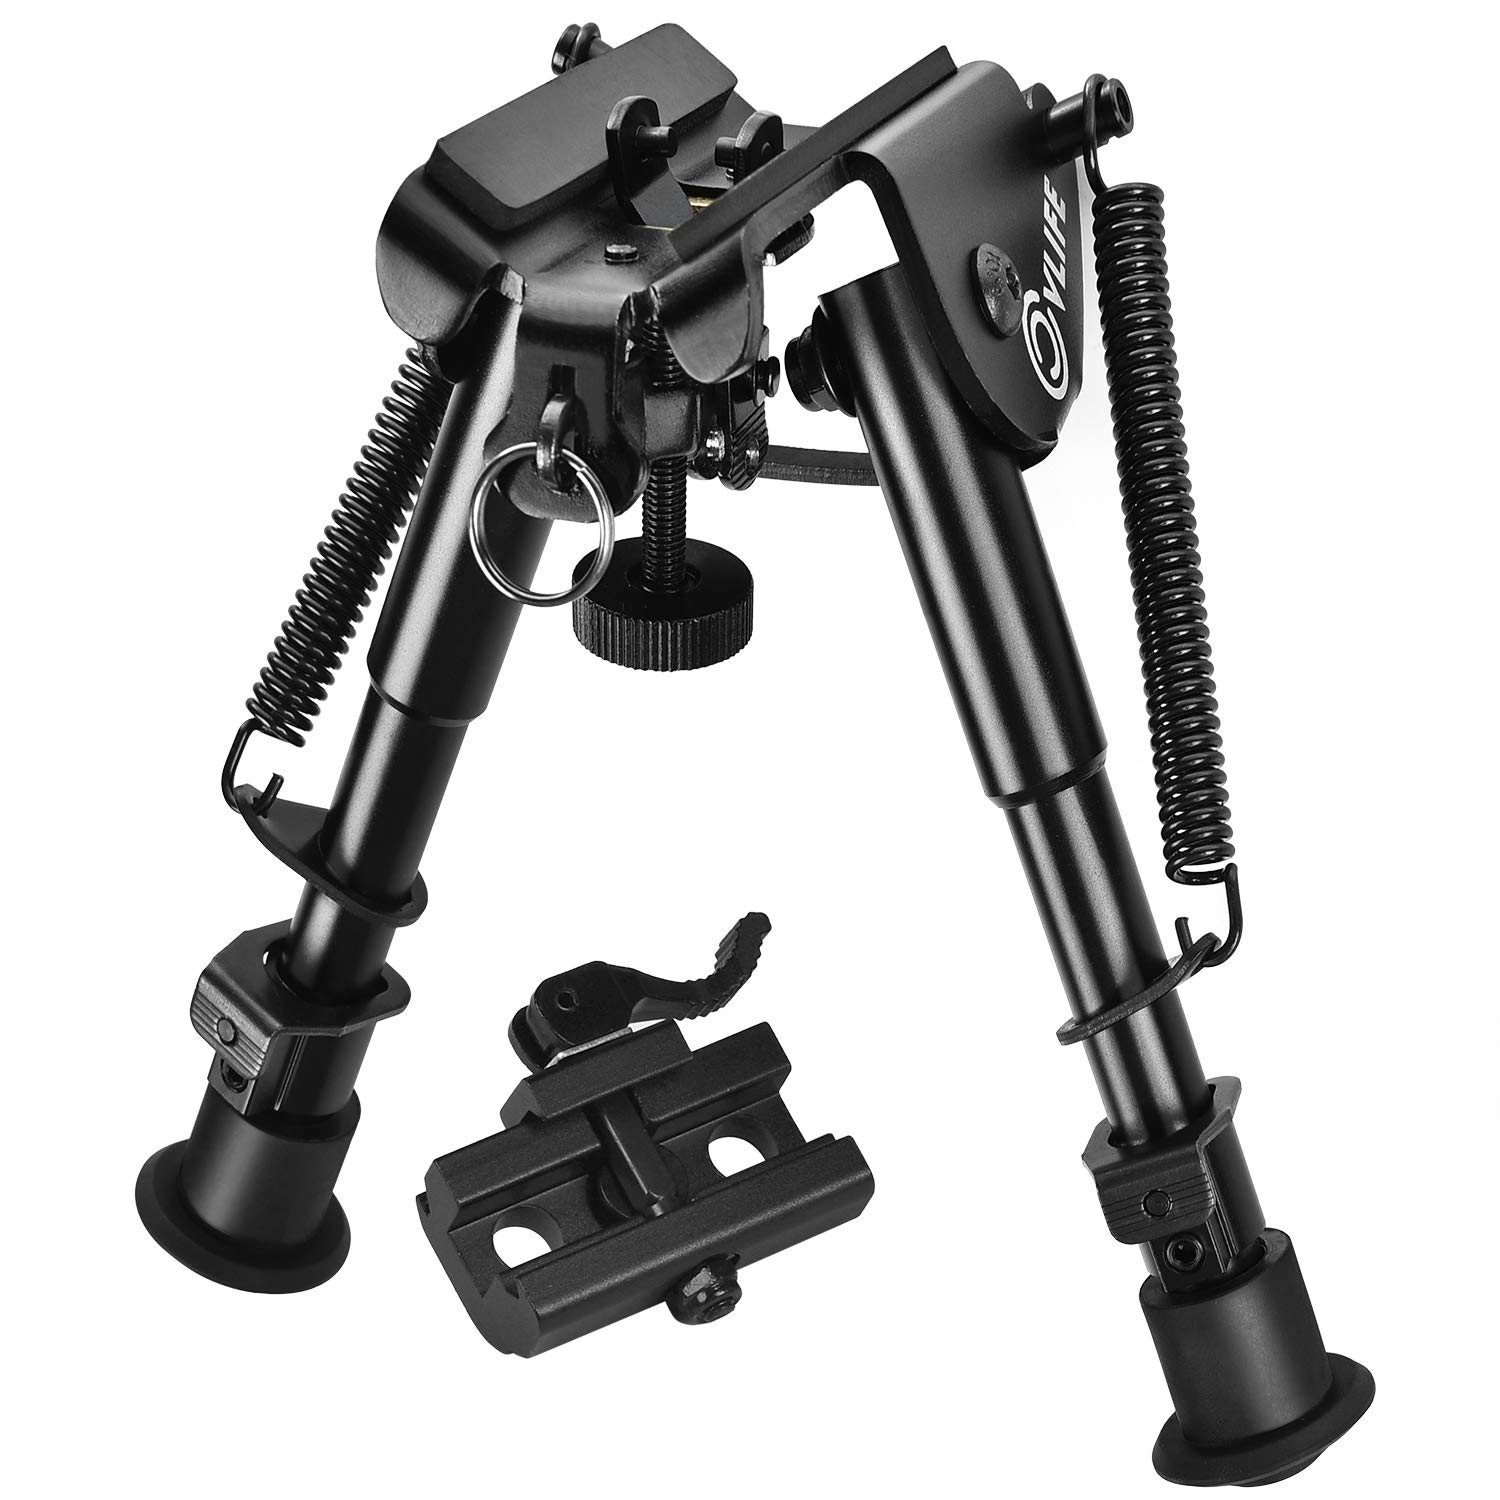 CVLIFE 6-9 Inches Rifle Bipod Quick Release Adapter Included for Hunting and Shooting Huihaozi